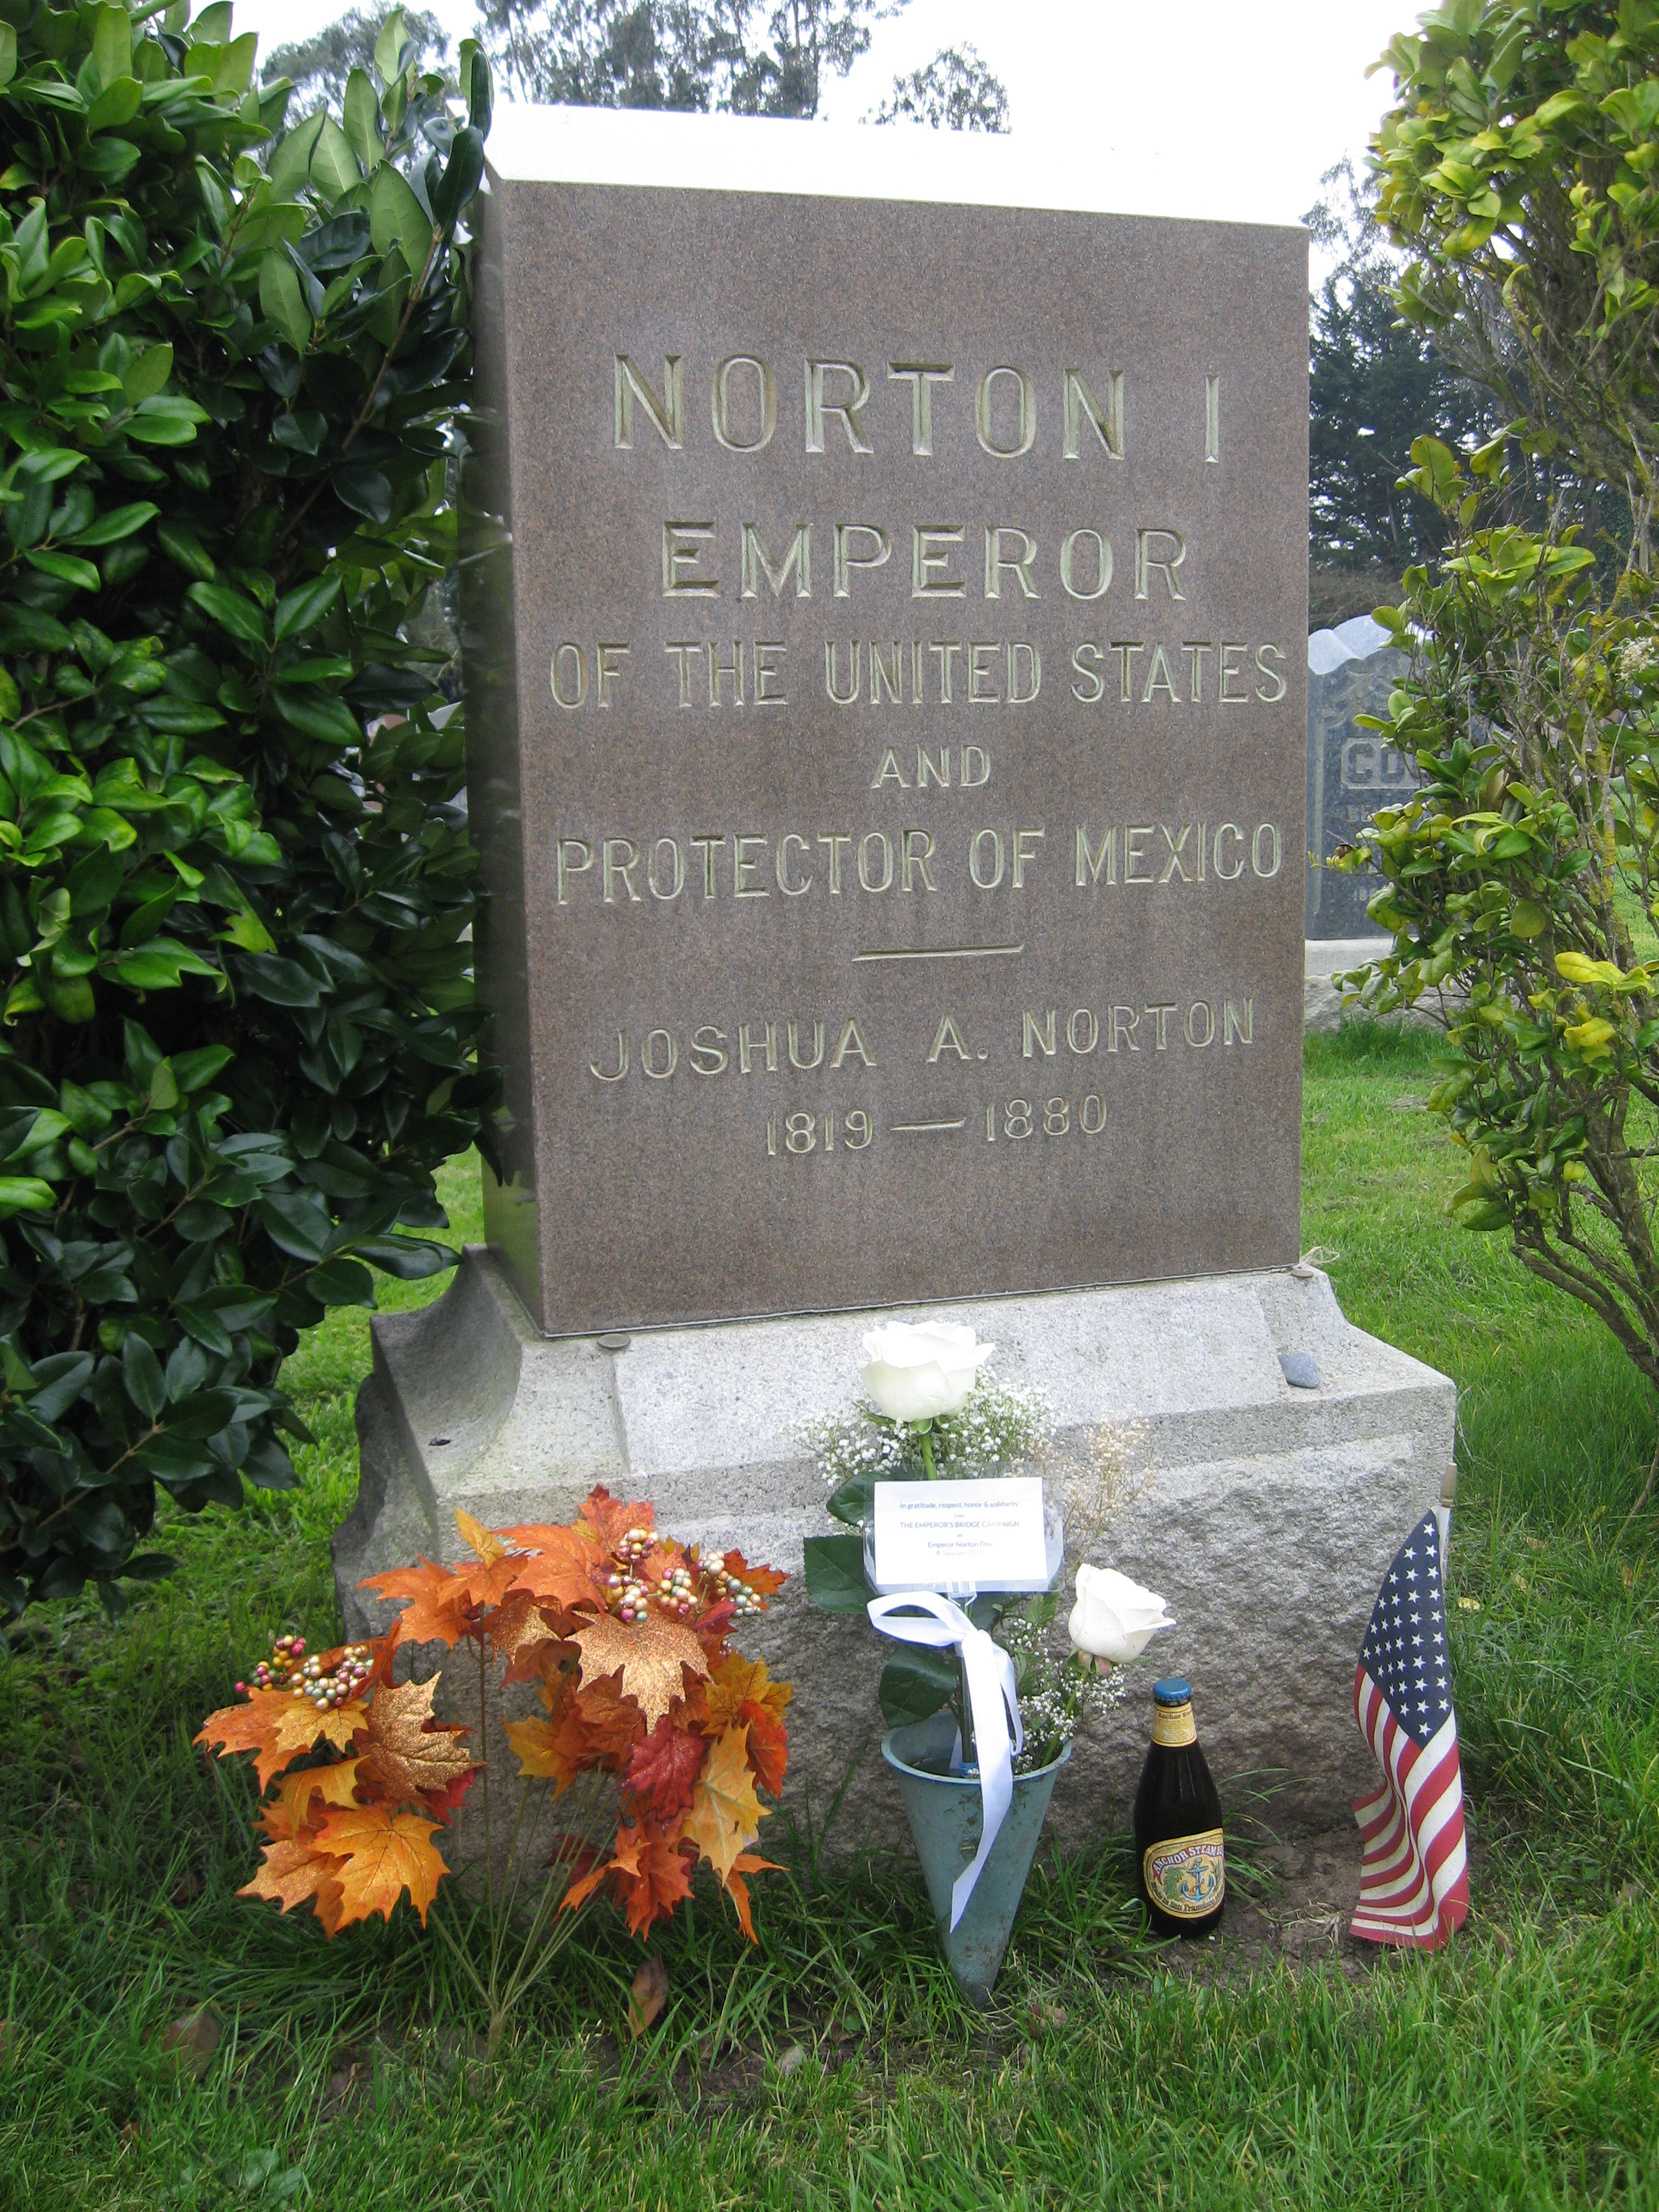 A closer view of the Emperor's stone on Emperor Norton Day, 8 January 2015.